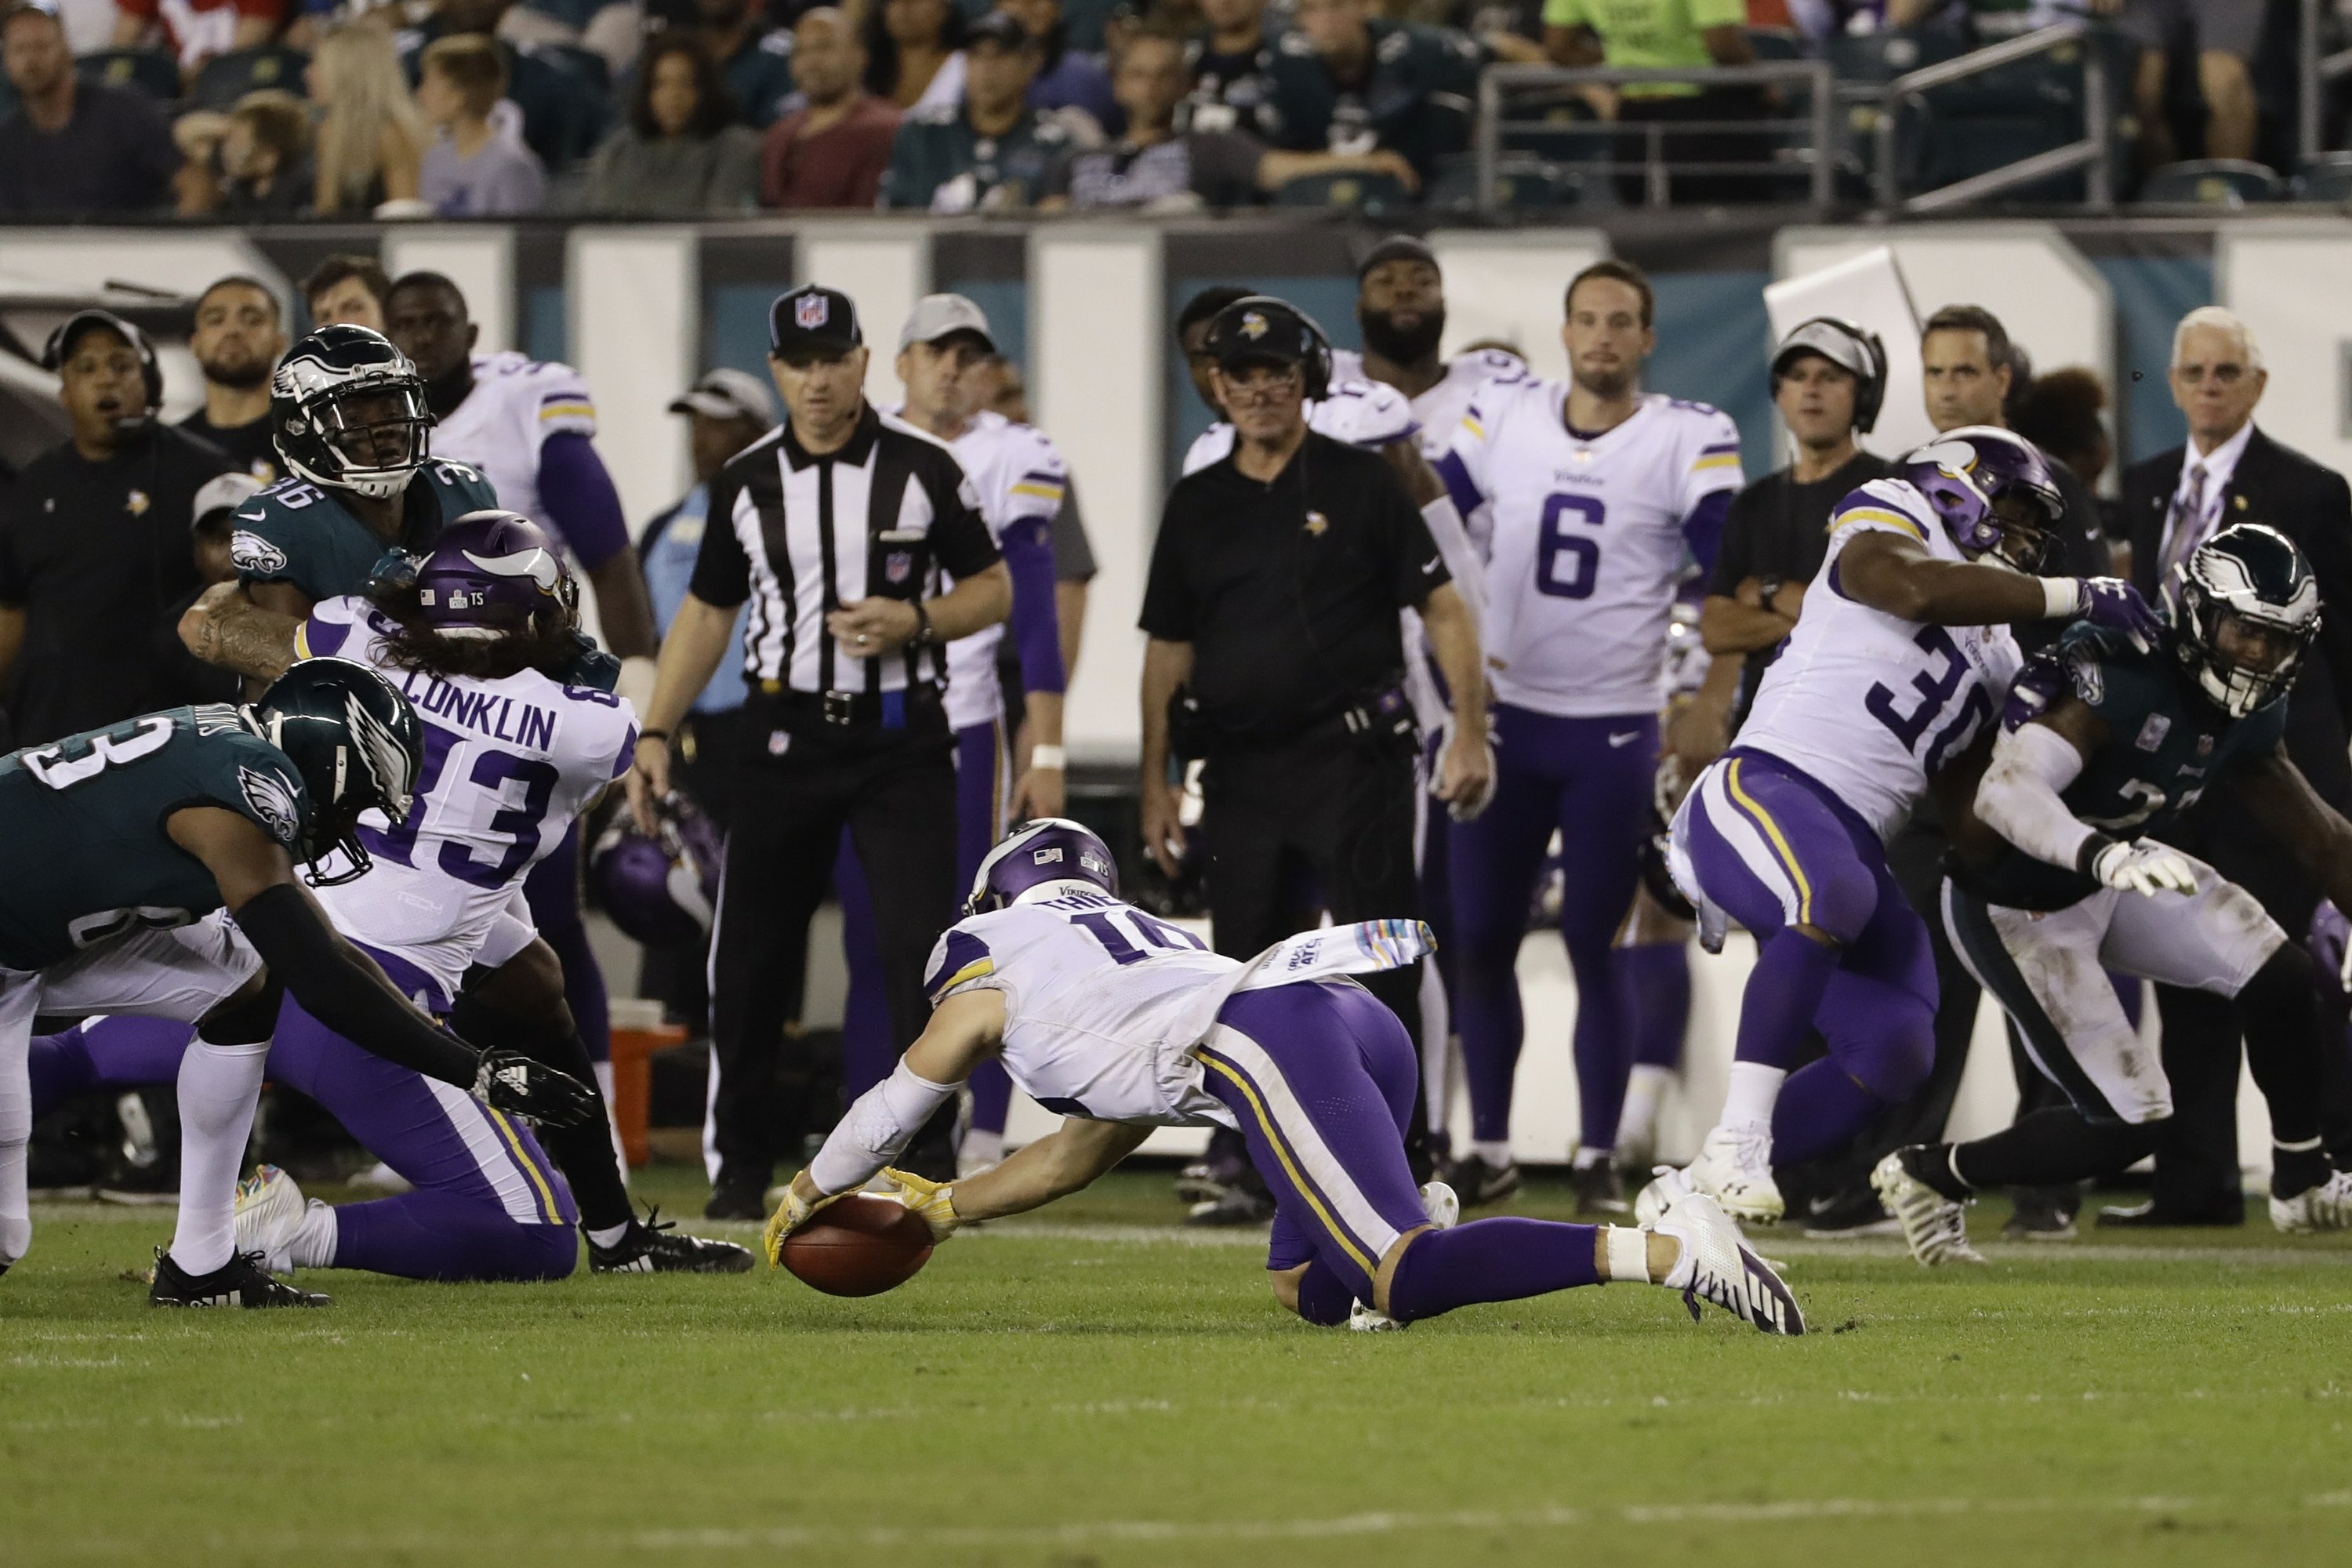 Successful onside kicks have nearly disappeared